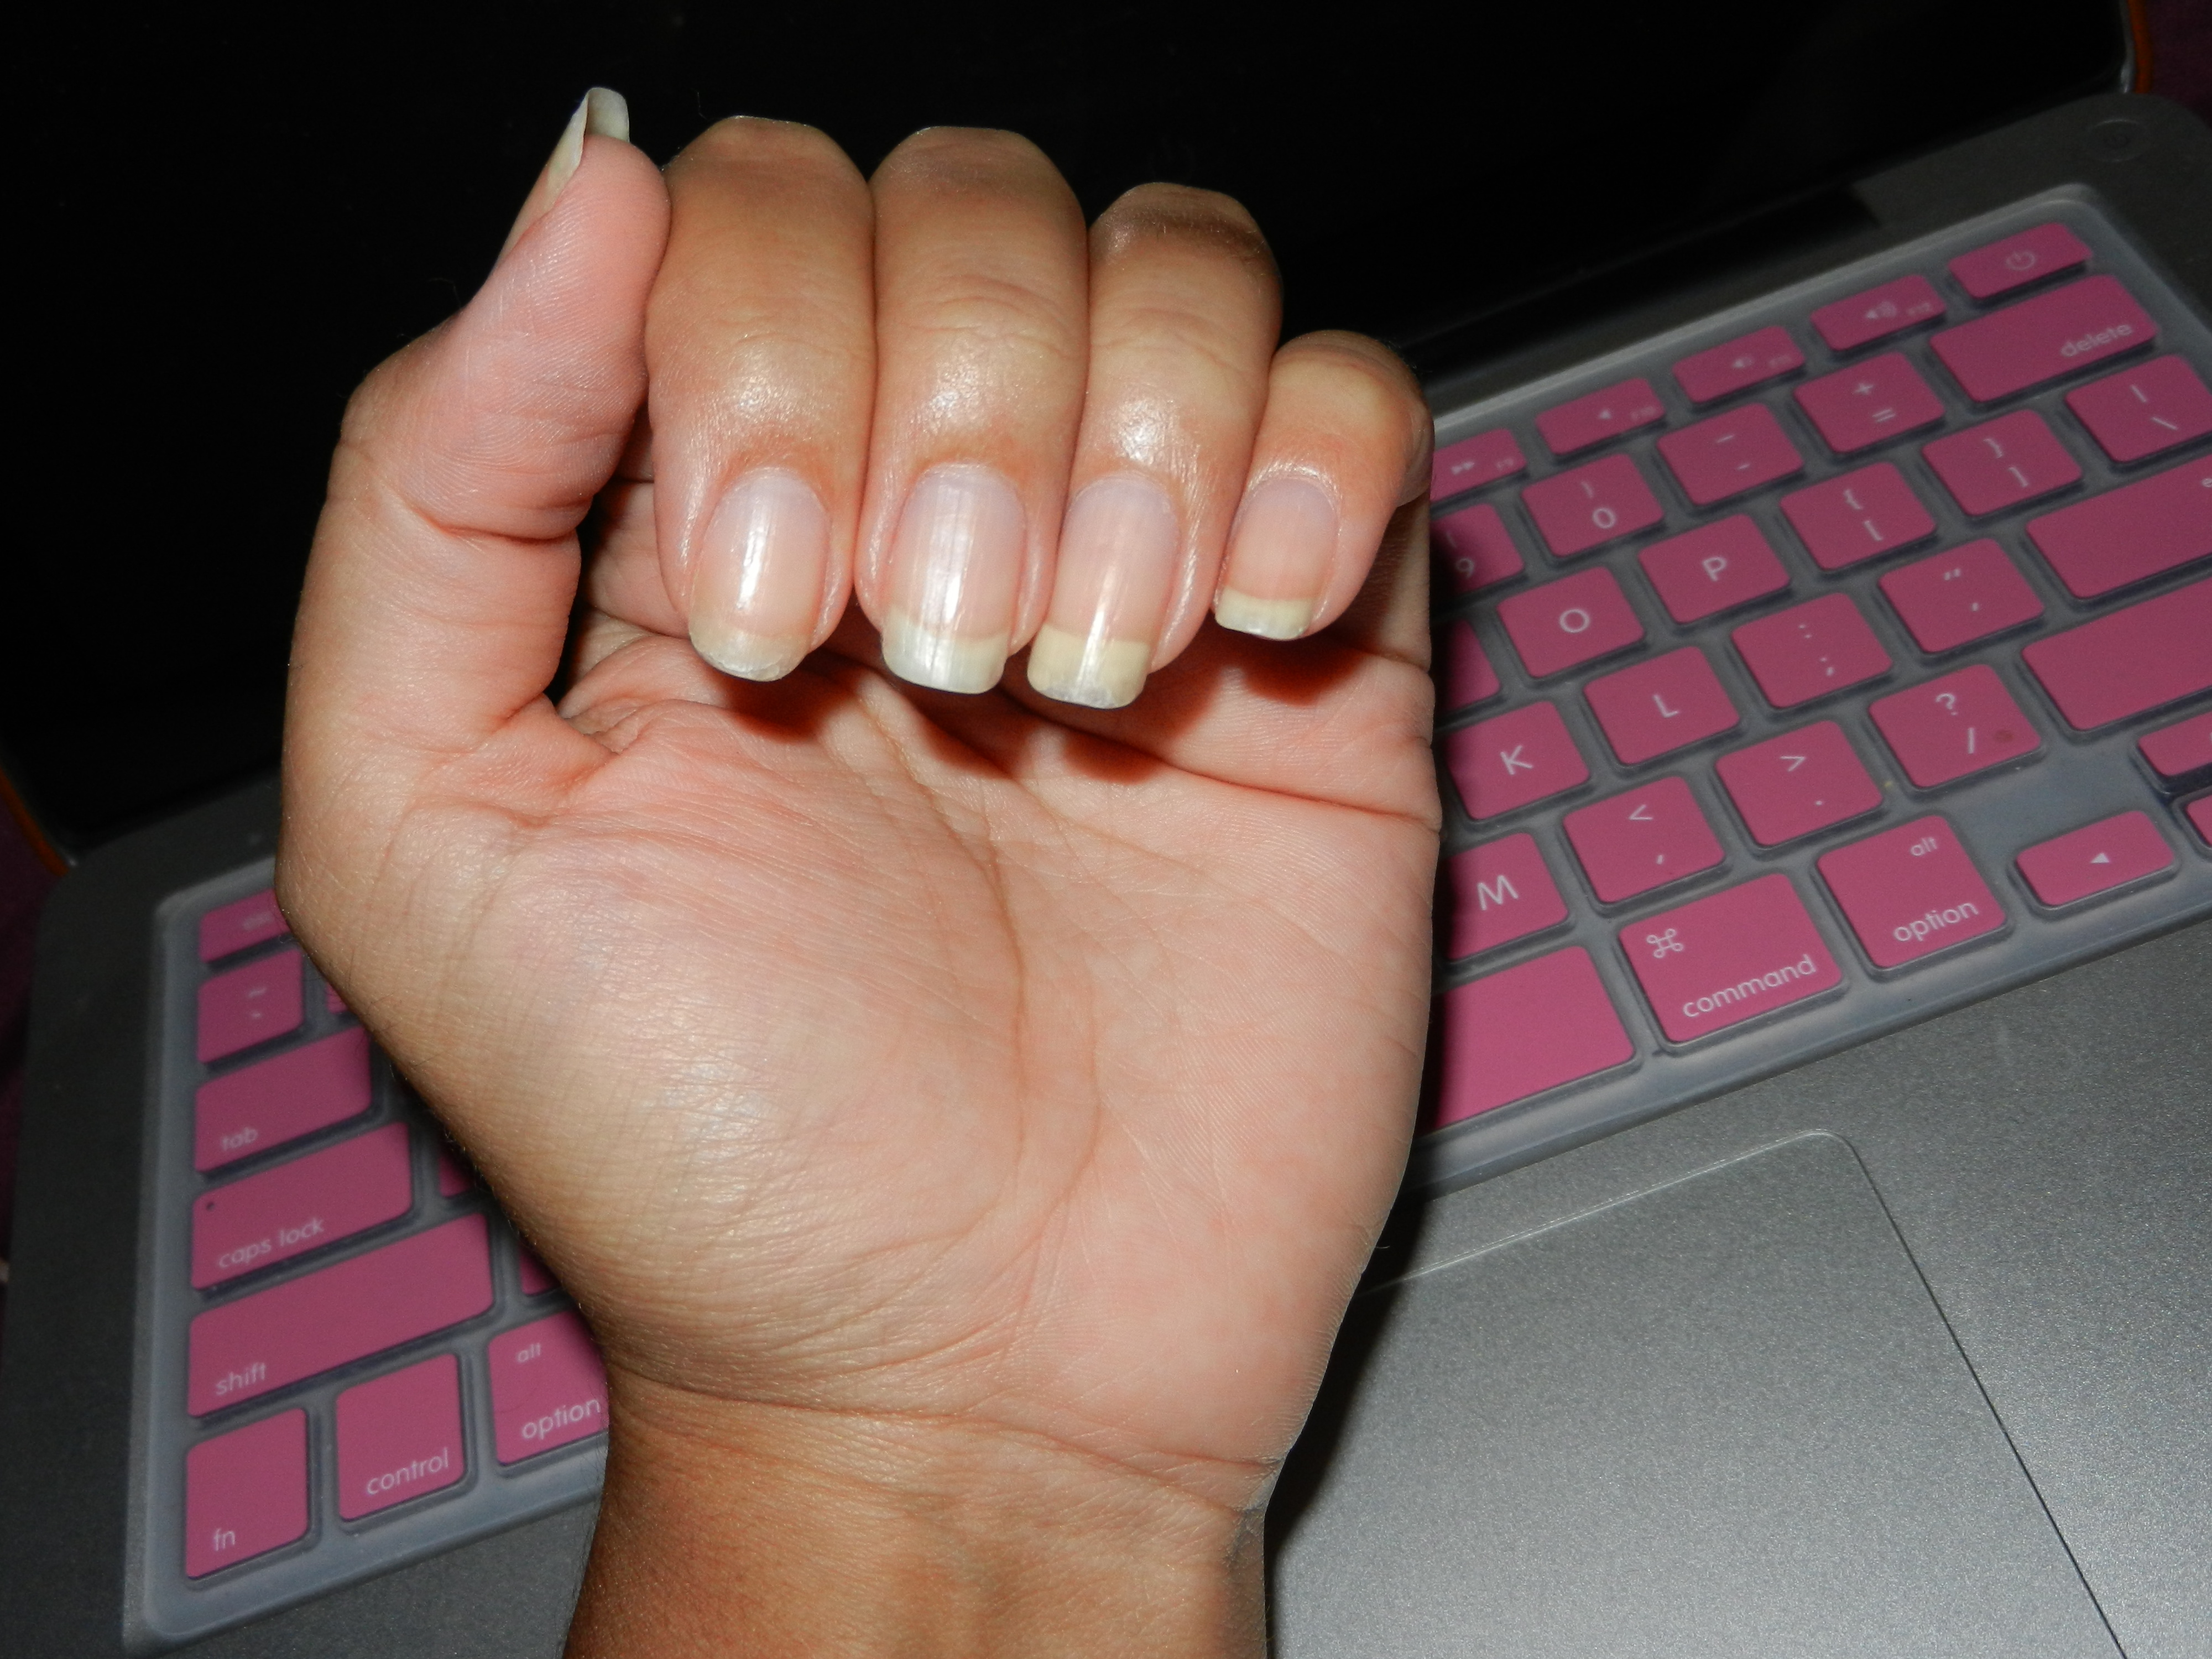 Nails: Length and Strength, OPI and Essie trial and review | Glitter ...